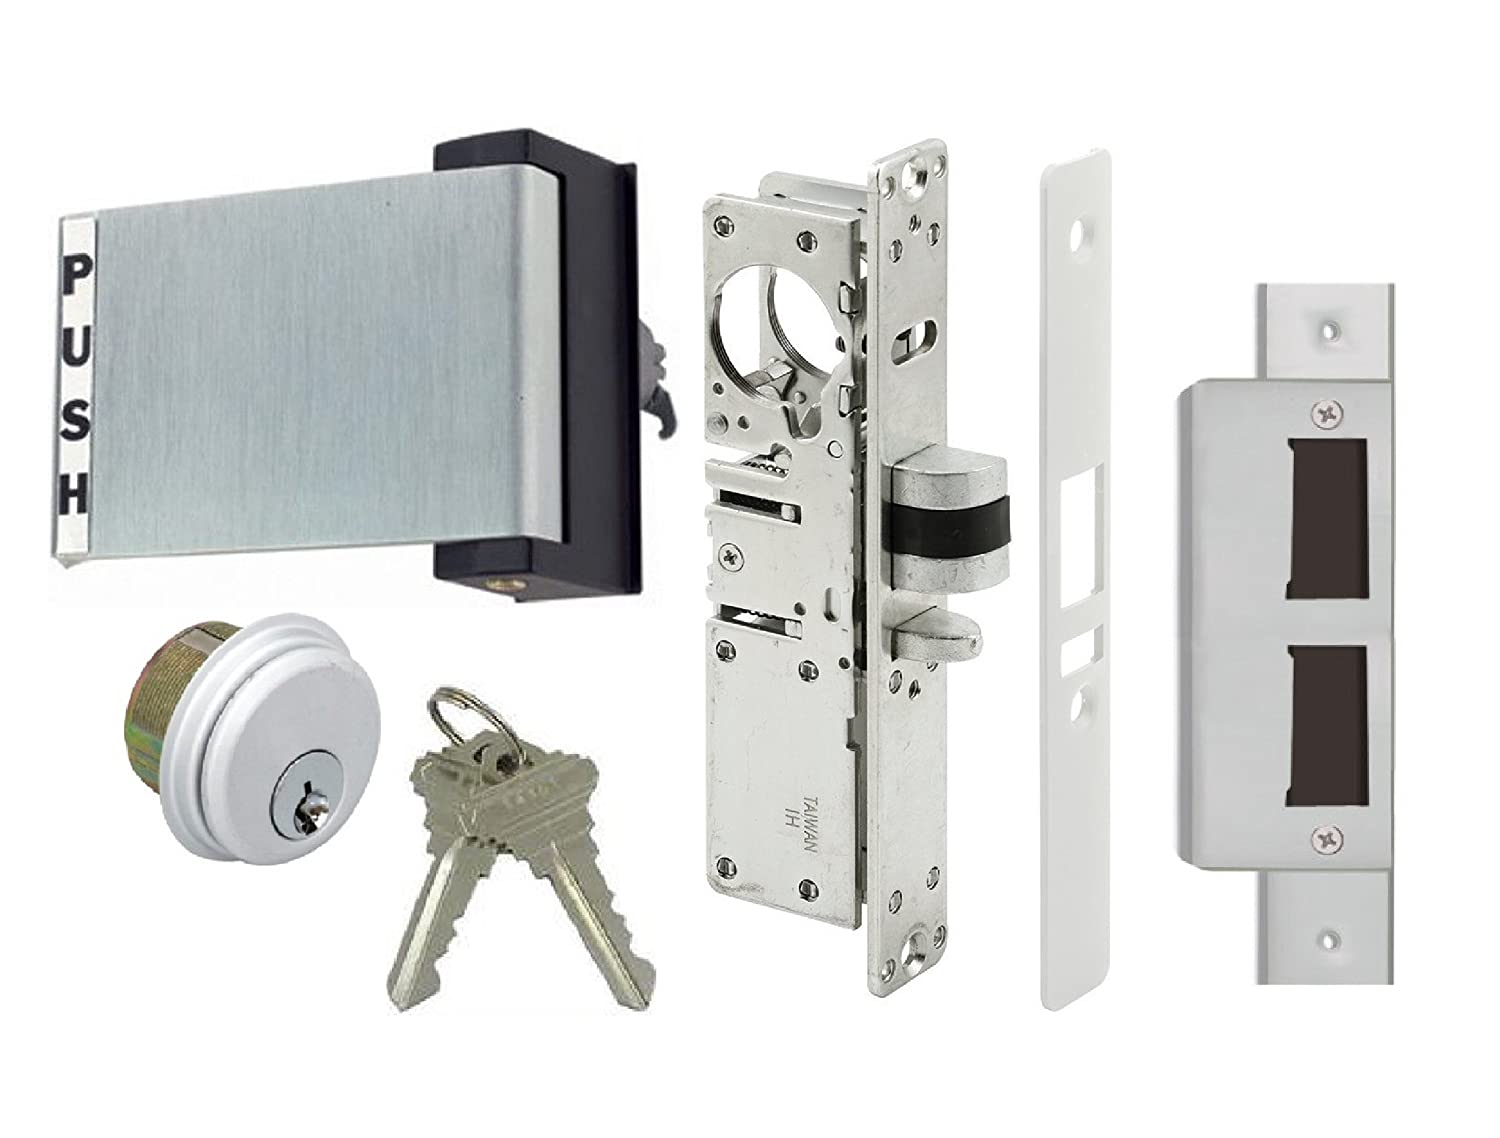 Adams Rite style latch storefront door mortise deadlatch lock exit paddle  handle kit with cylinder and keys, in aluminum (1-1/8